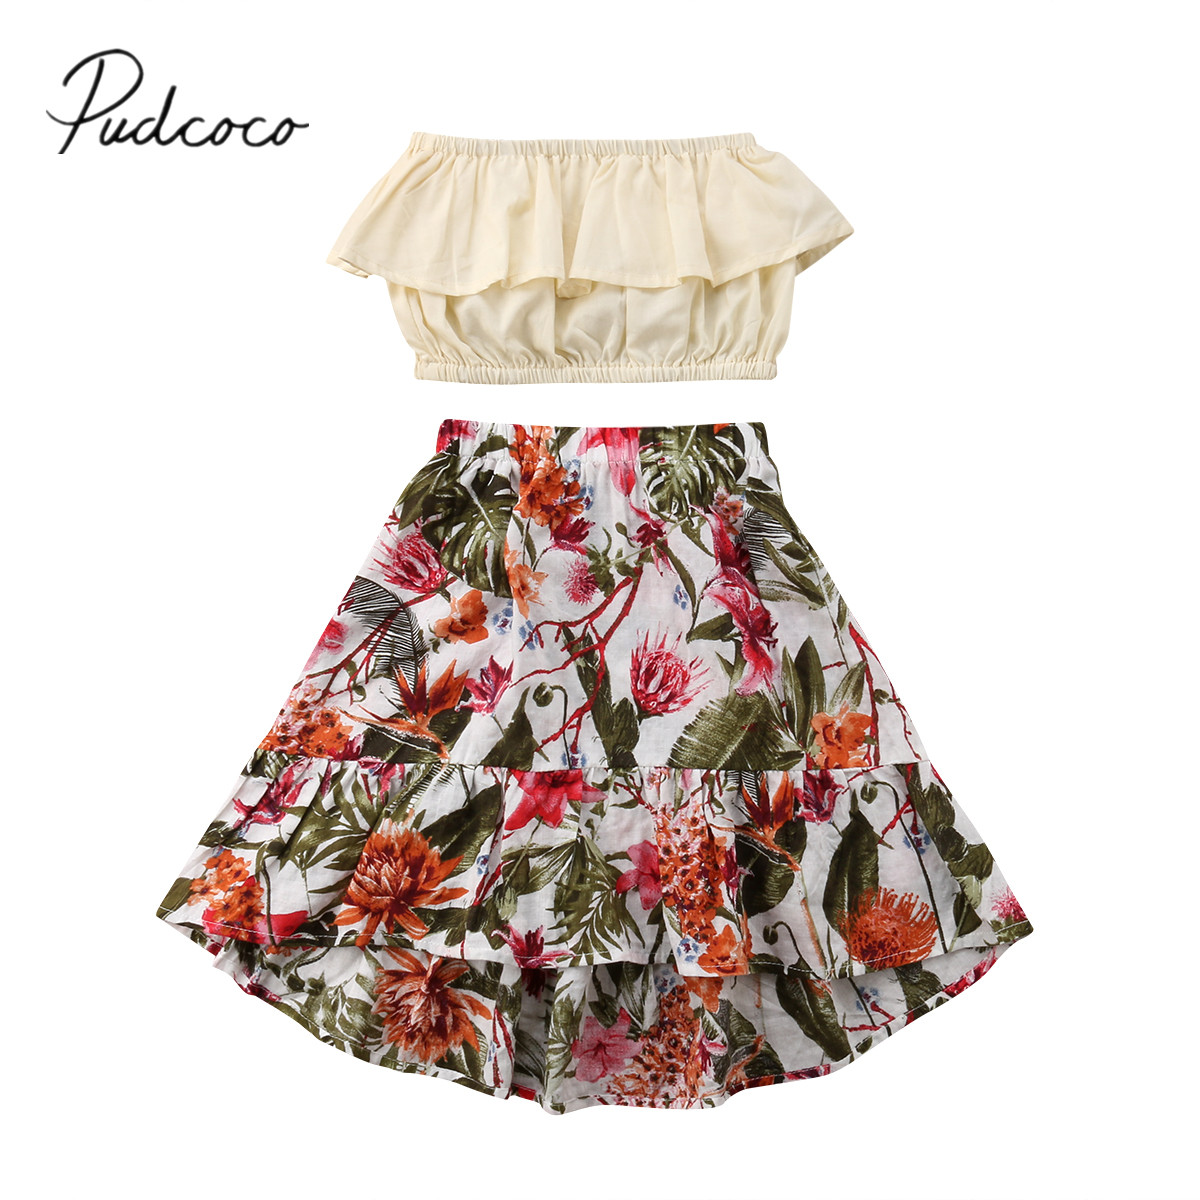 2018 Brand New Infant Toddler Child Kid Baby Girl Summer Clothes Chiffon Crops Short Top + Floral Skirt Outfit 2PCS Sets 1-7T беговая дорожка horizon tempo t85 page 4